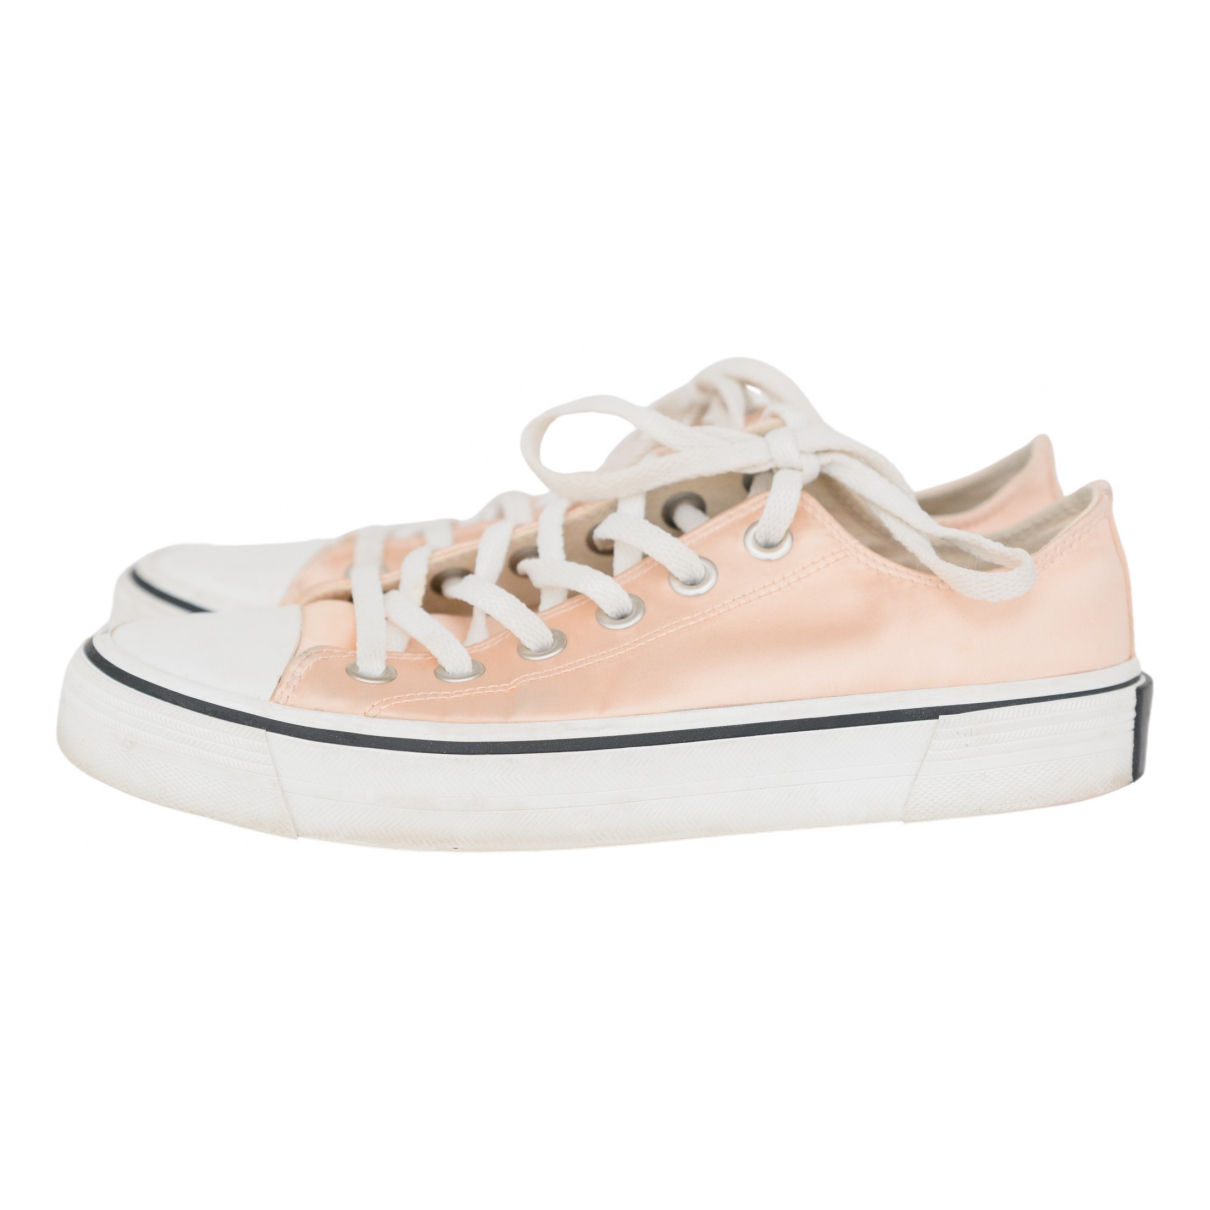 Marc Jacobs N Pink Cloth Trainers for Women 37 IT